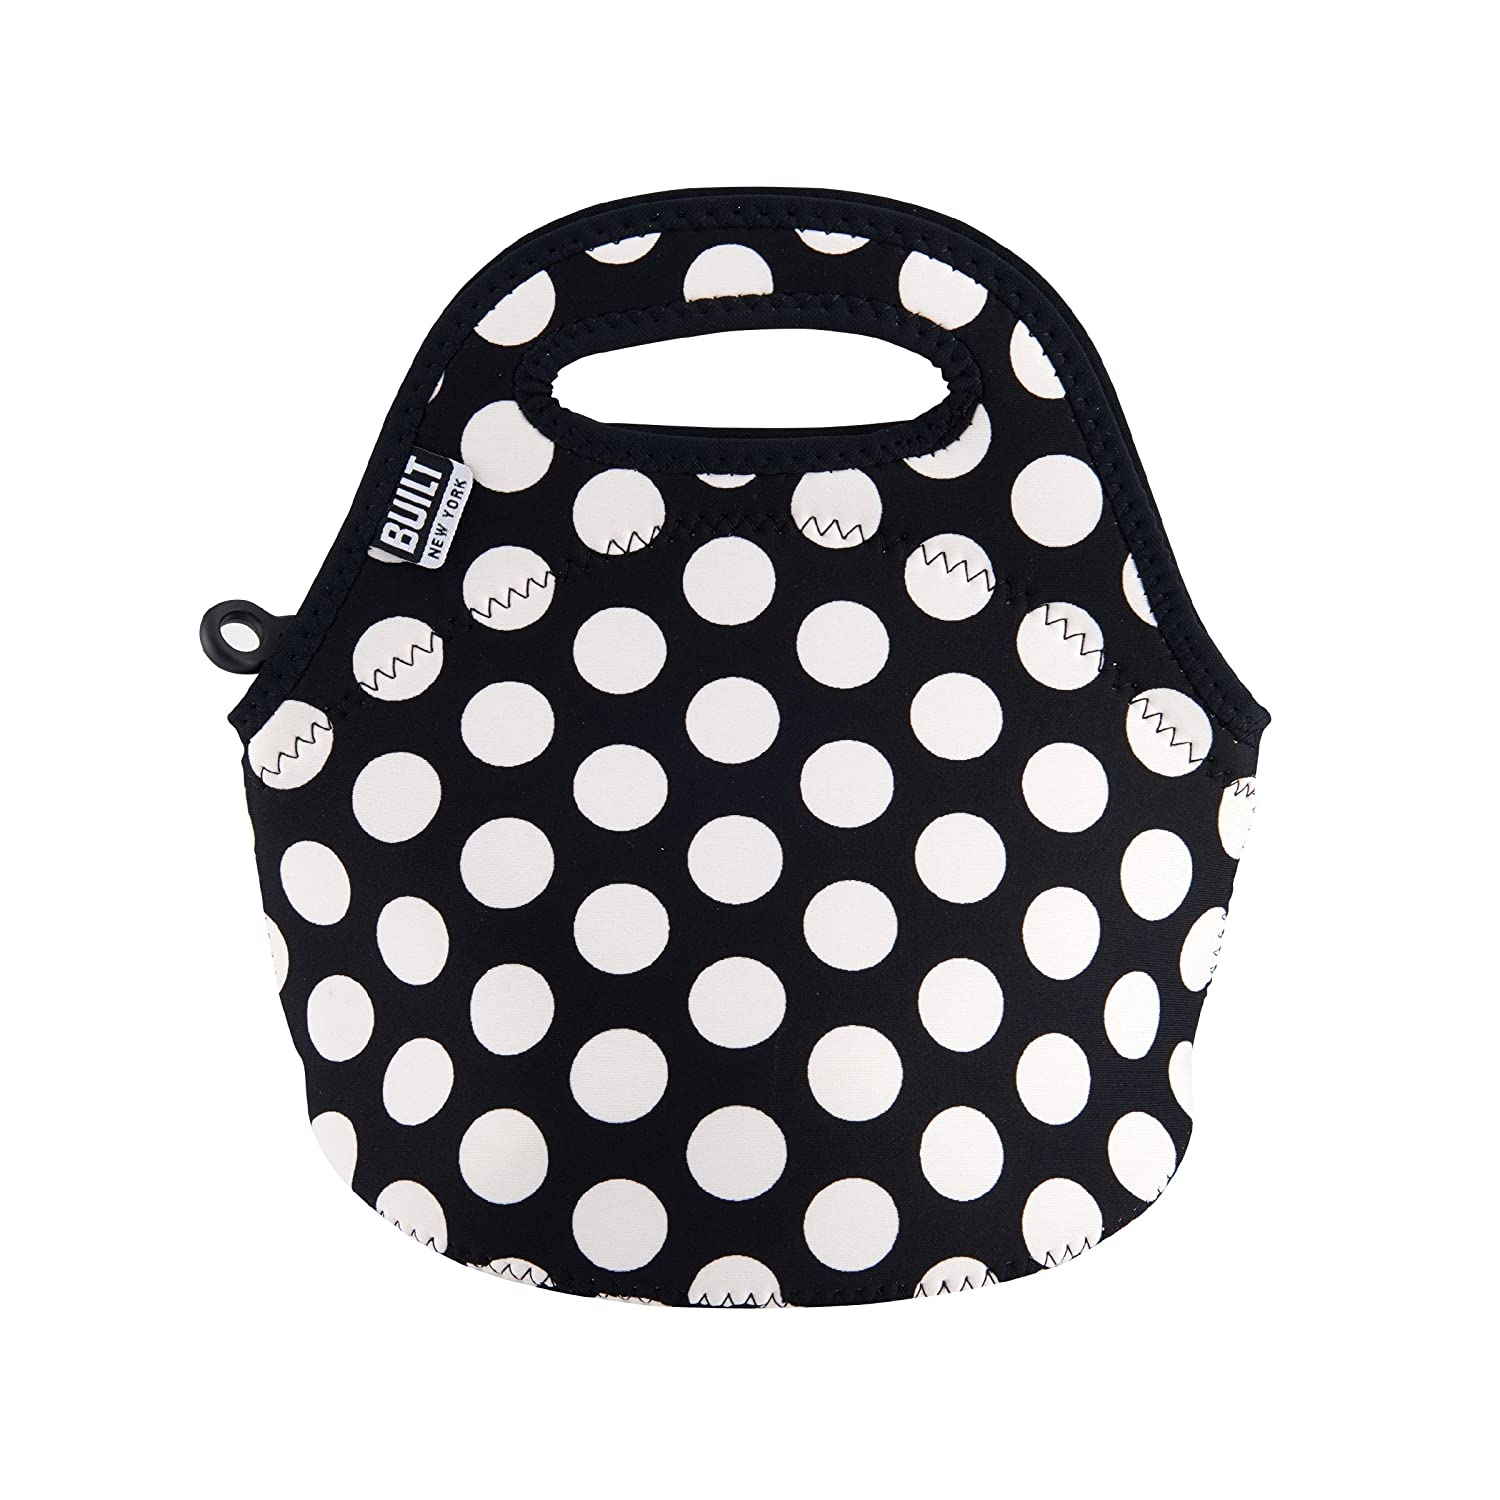 Insulated and Reusable BUILT LB10-BBW Gourmet Getaway Mini Soft Neoprene Lunch Tote Bag-Lightweight Snack Big Dot Black /& White